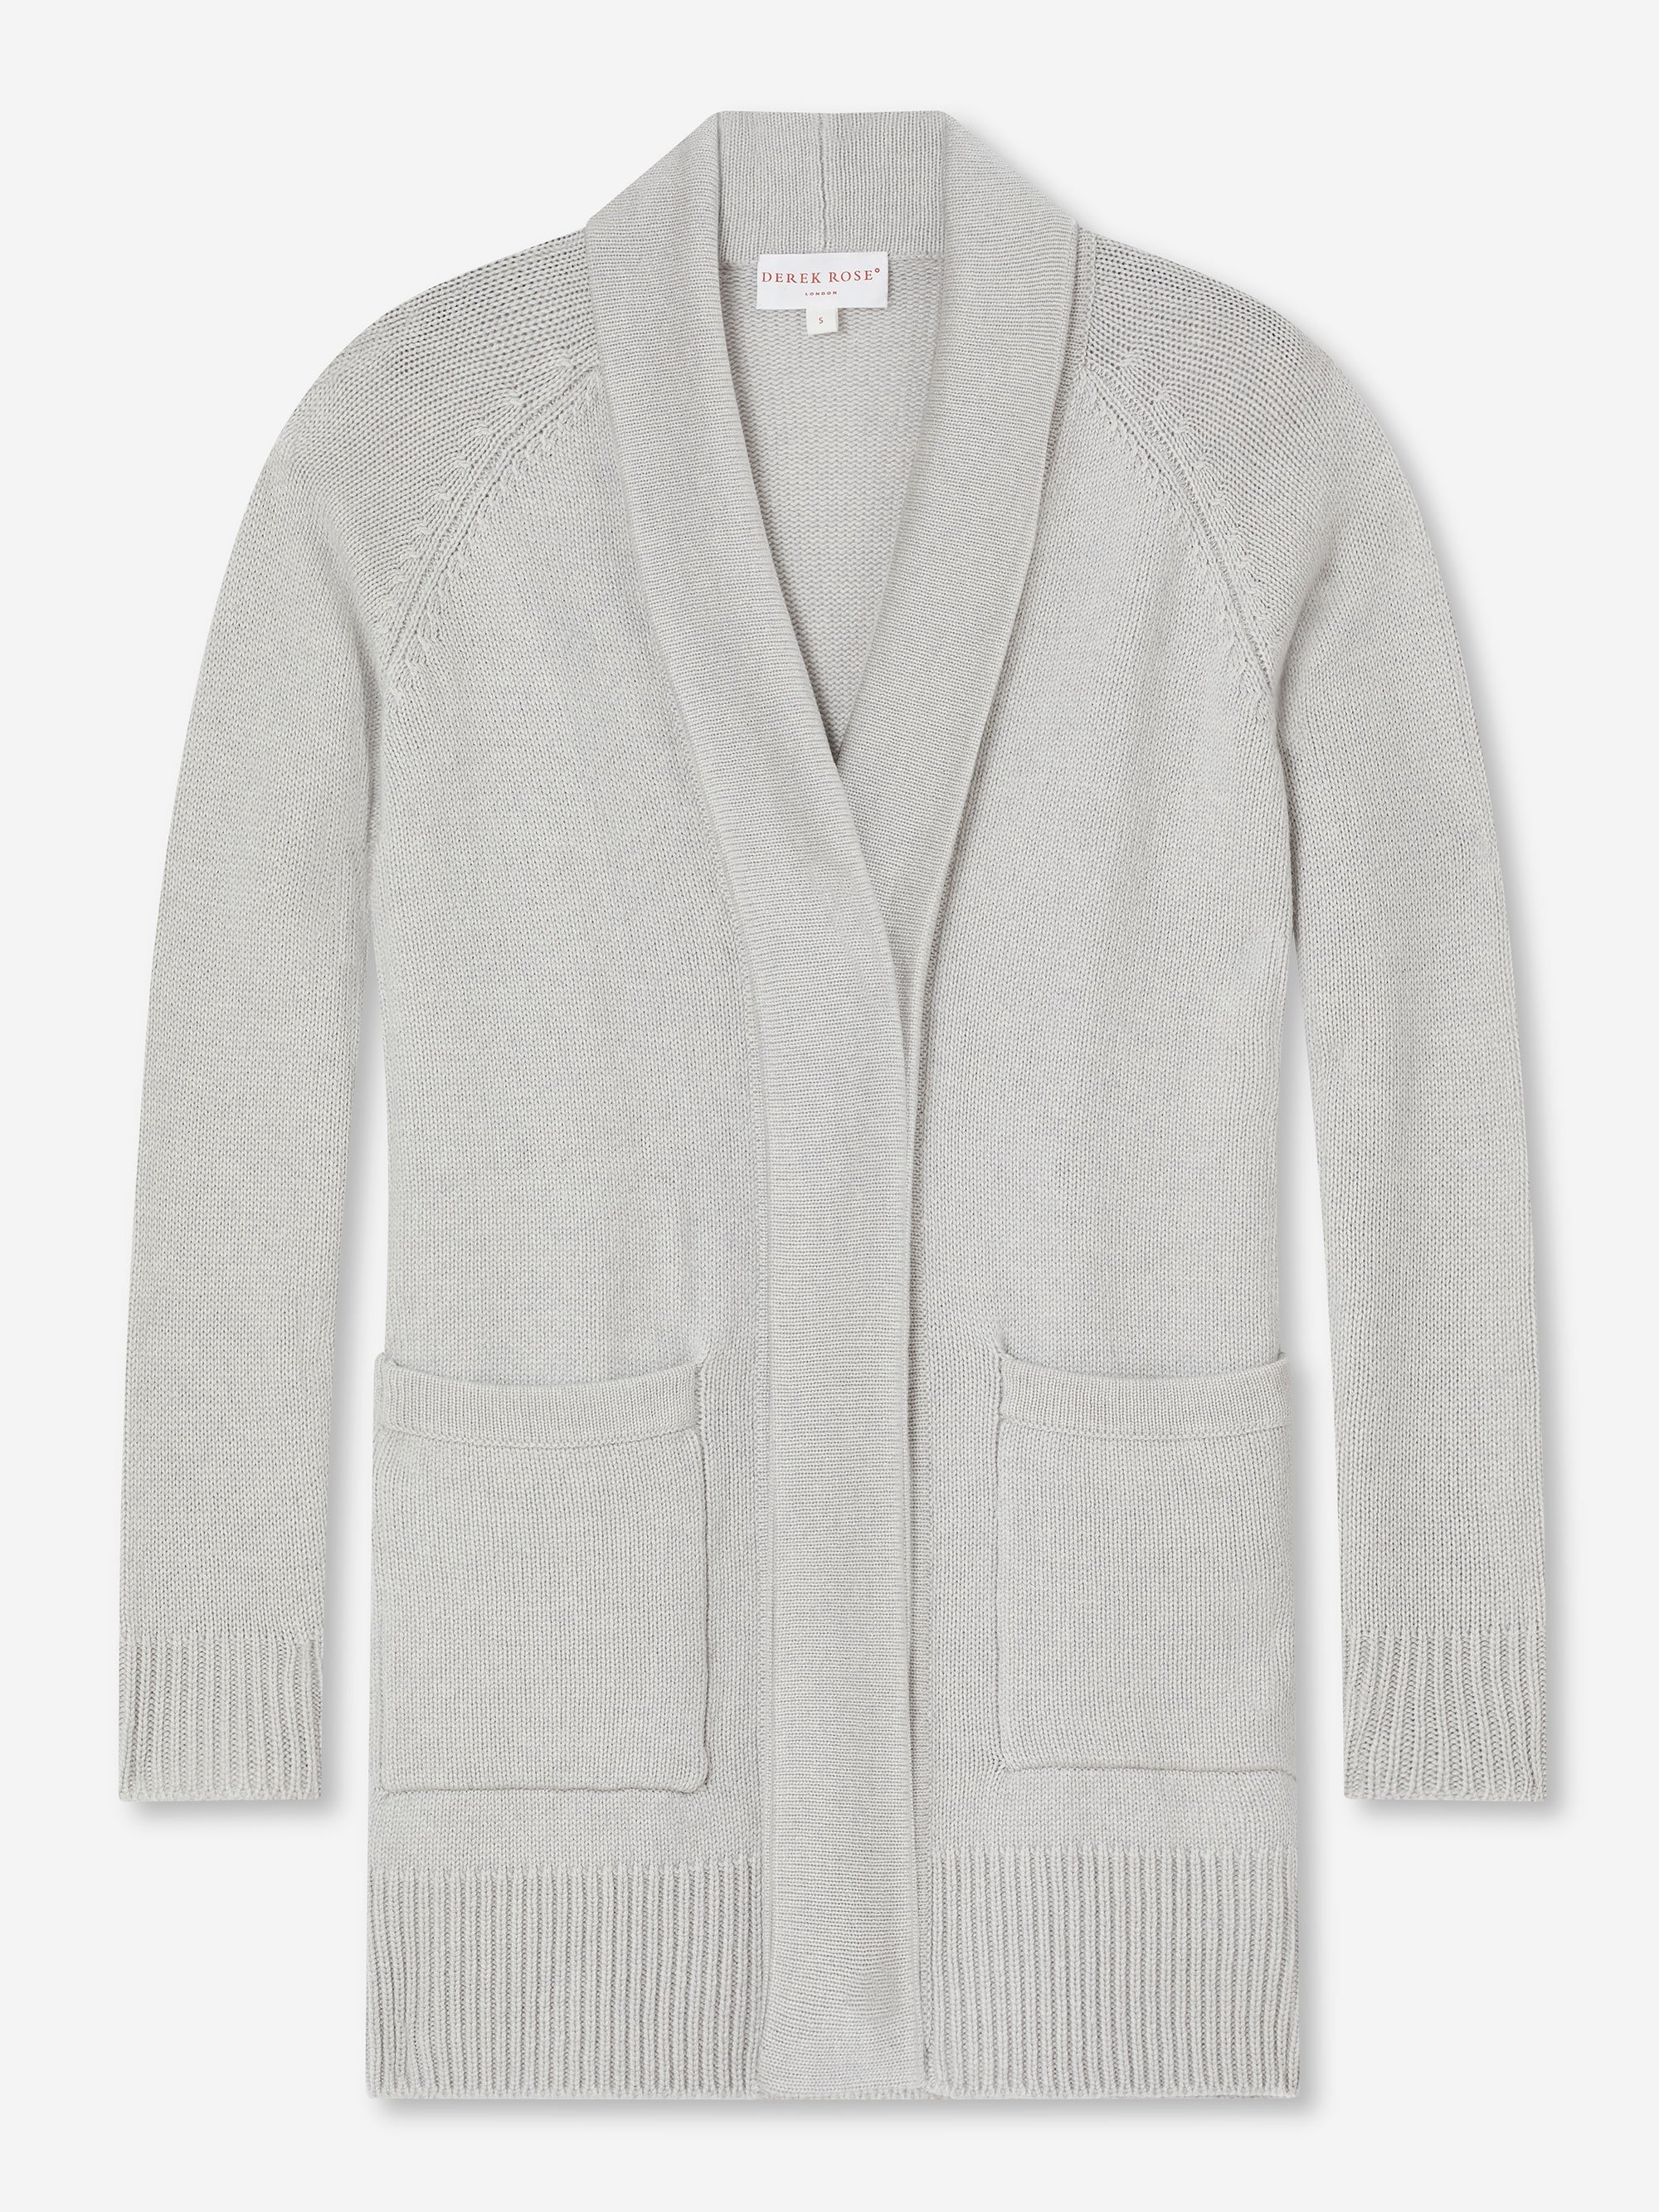 Women's Cashmere Cardigan Nina Pure Cashmere Silver